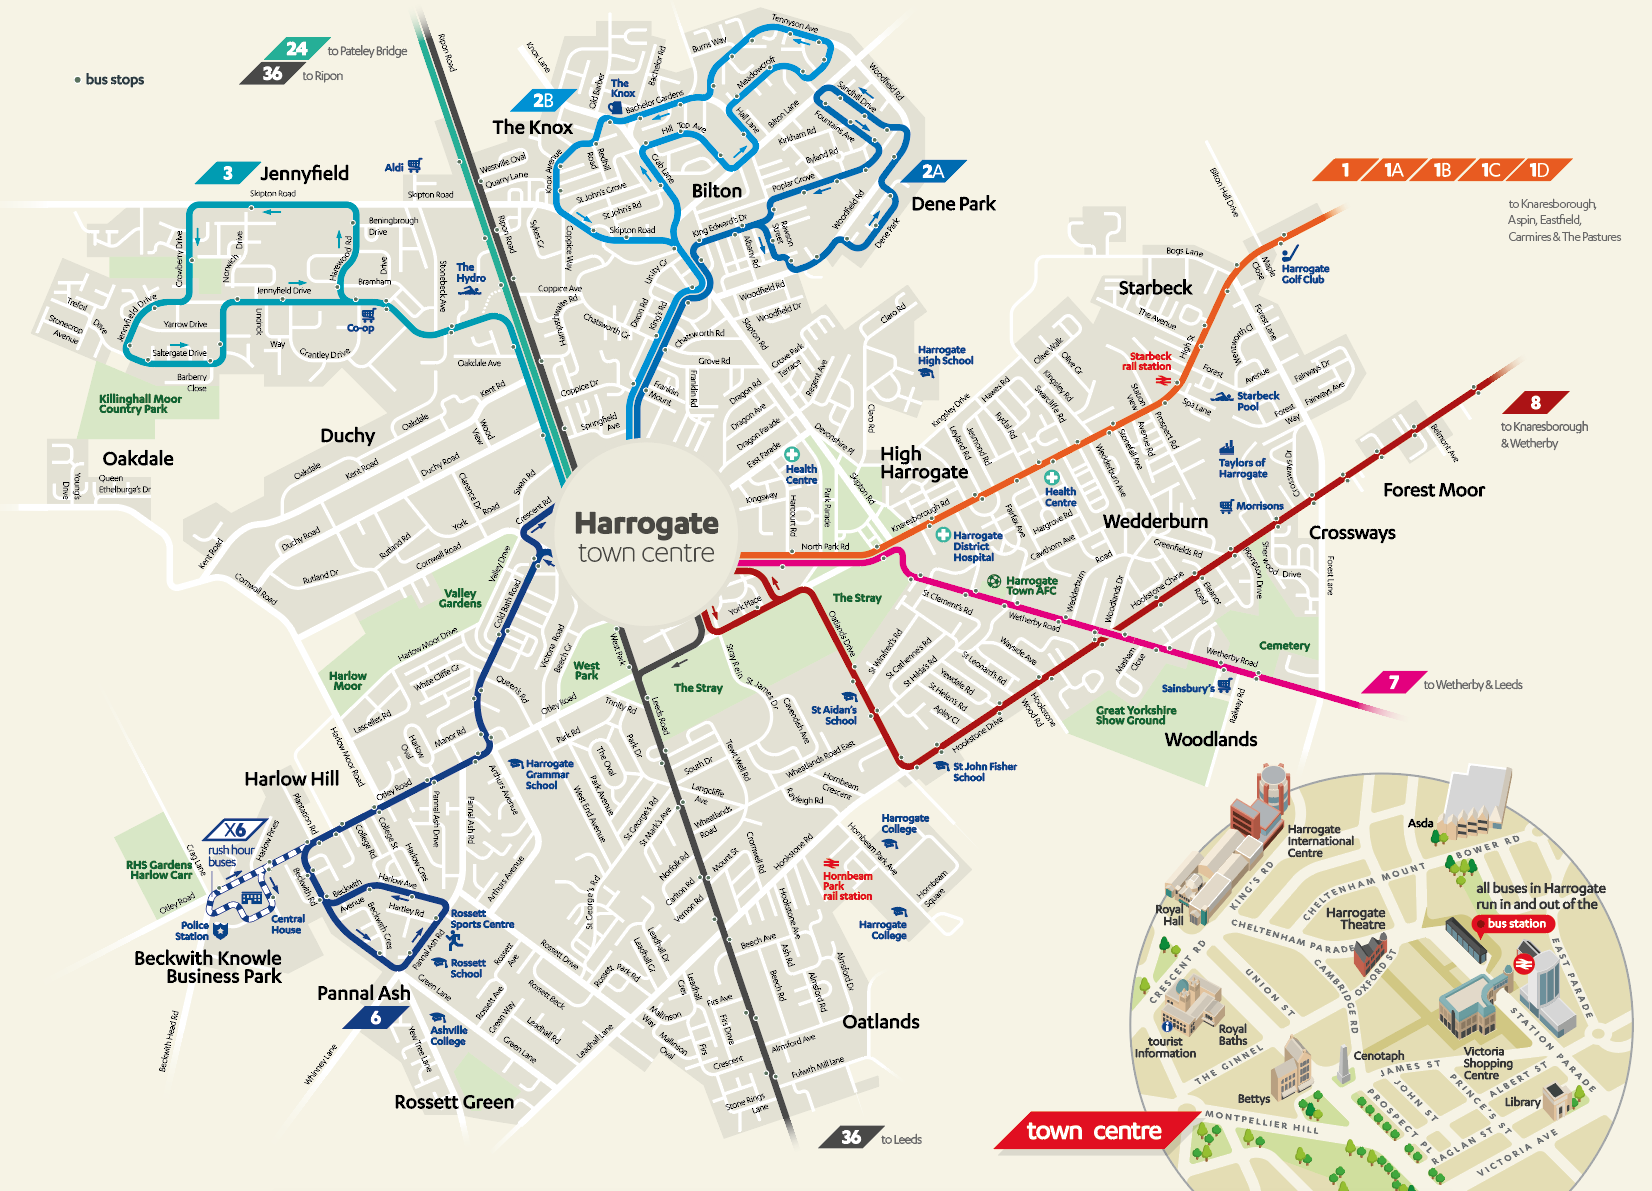 Harrogate network map